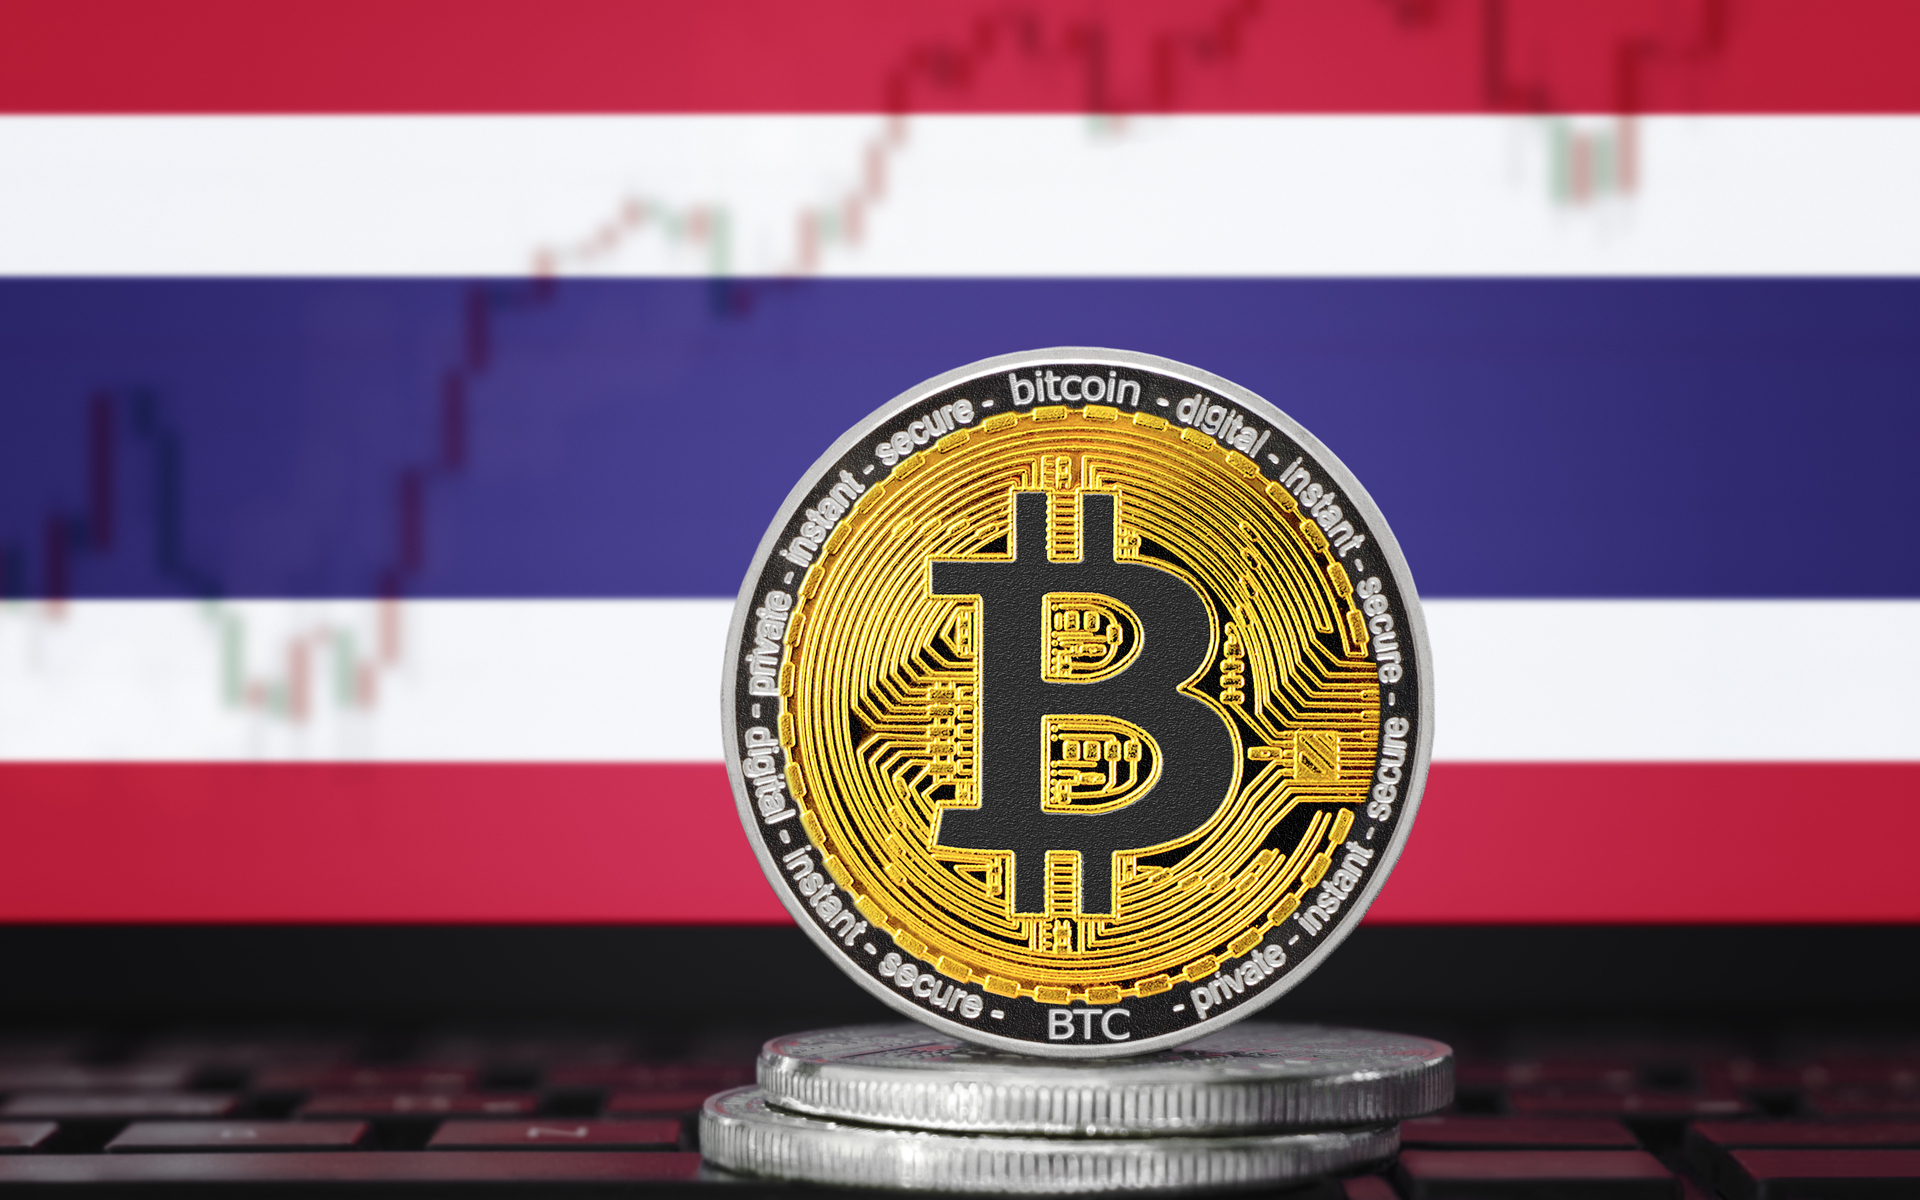 Bitcoin Trading Volume Surges 250% in Thailand After 'Seasteading' Fiasco